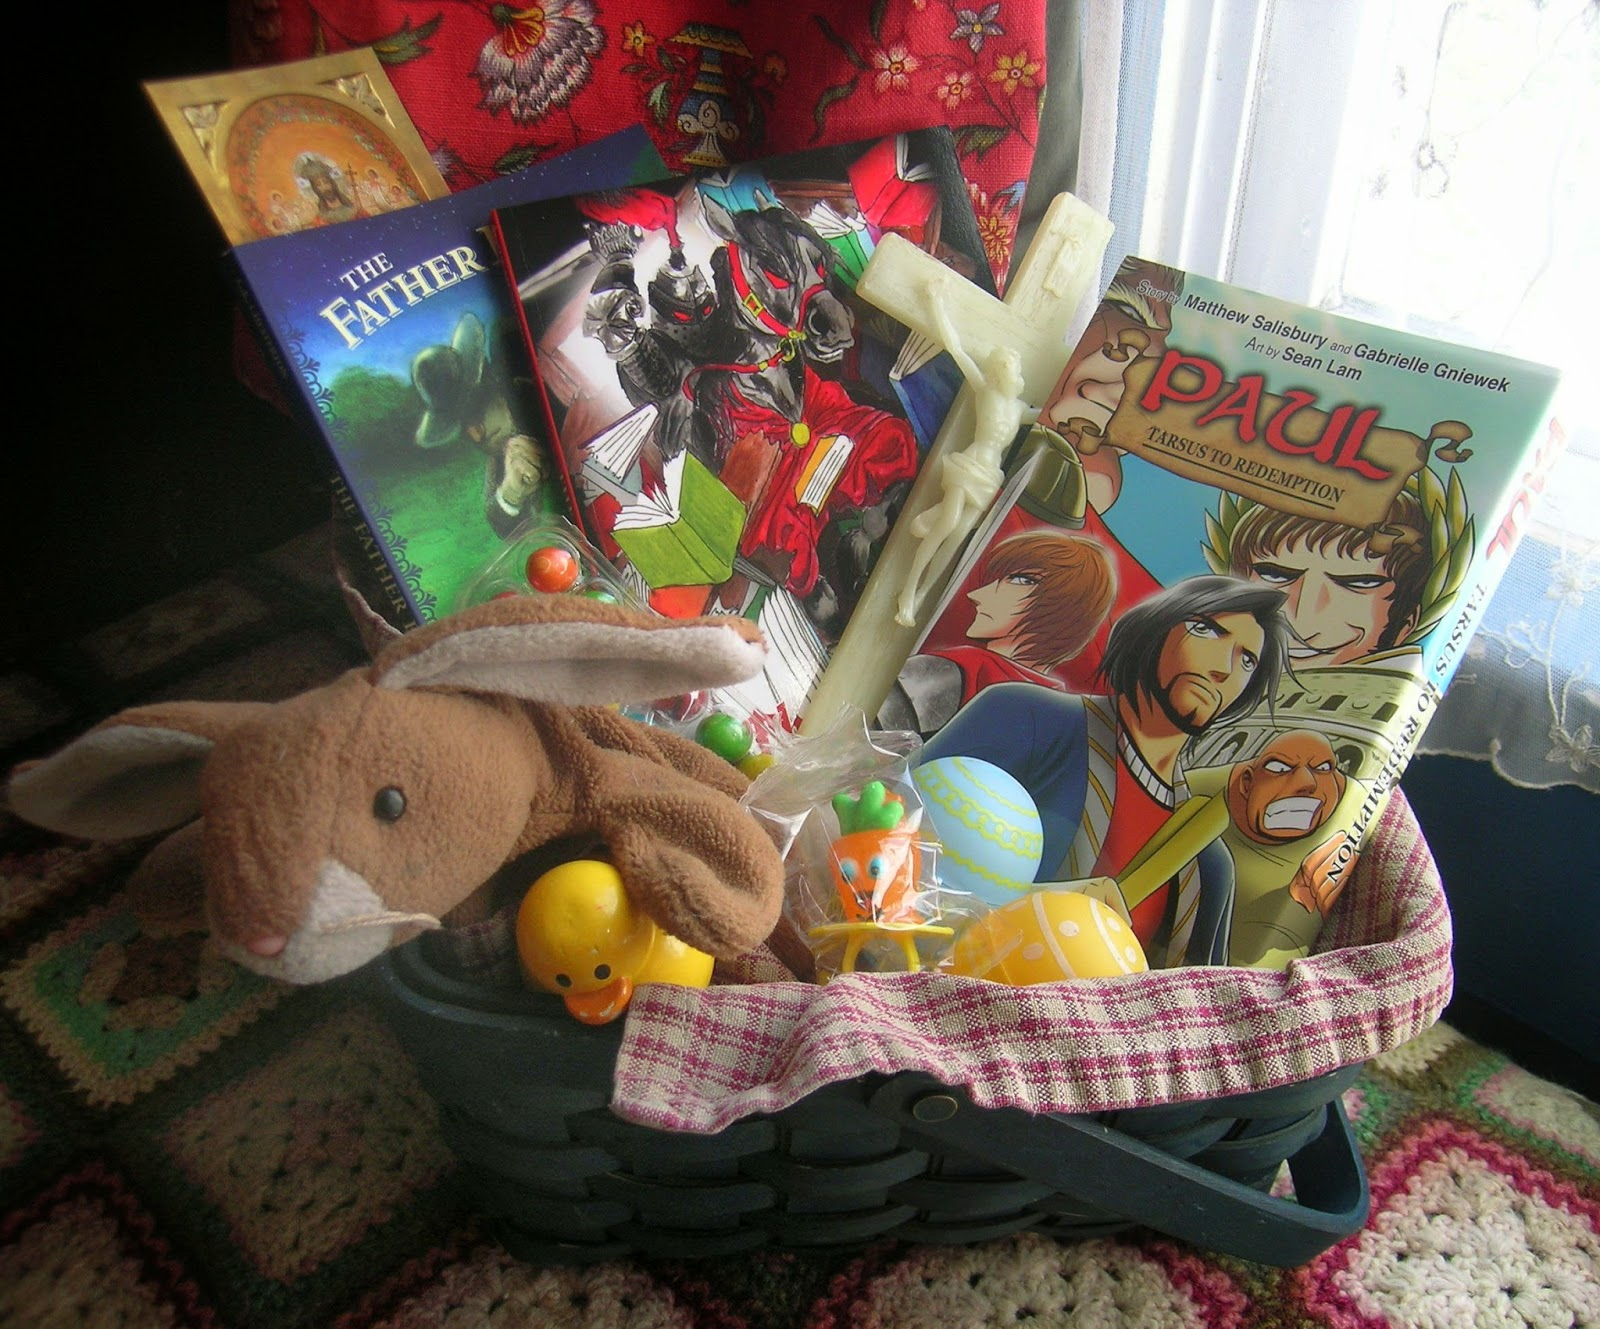 House art journal easter basket tour 2014 8 10 year old boy basket easter basket tour 2014 8 10 year old boy basket negle Choice Image